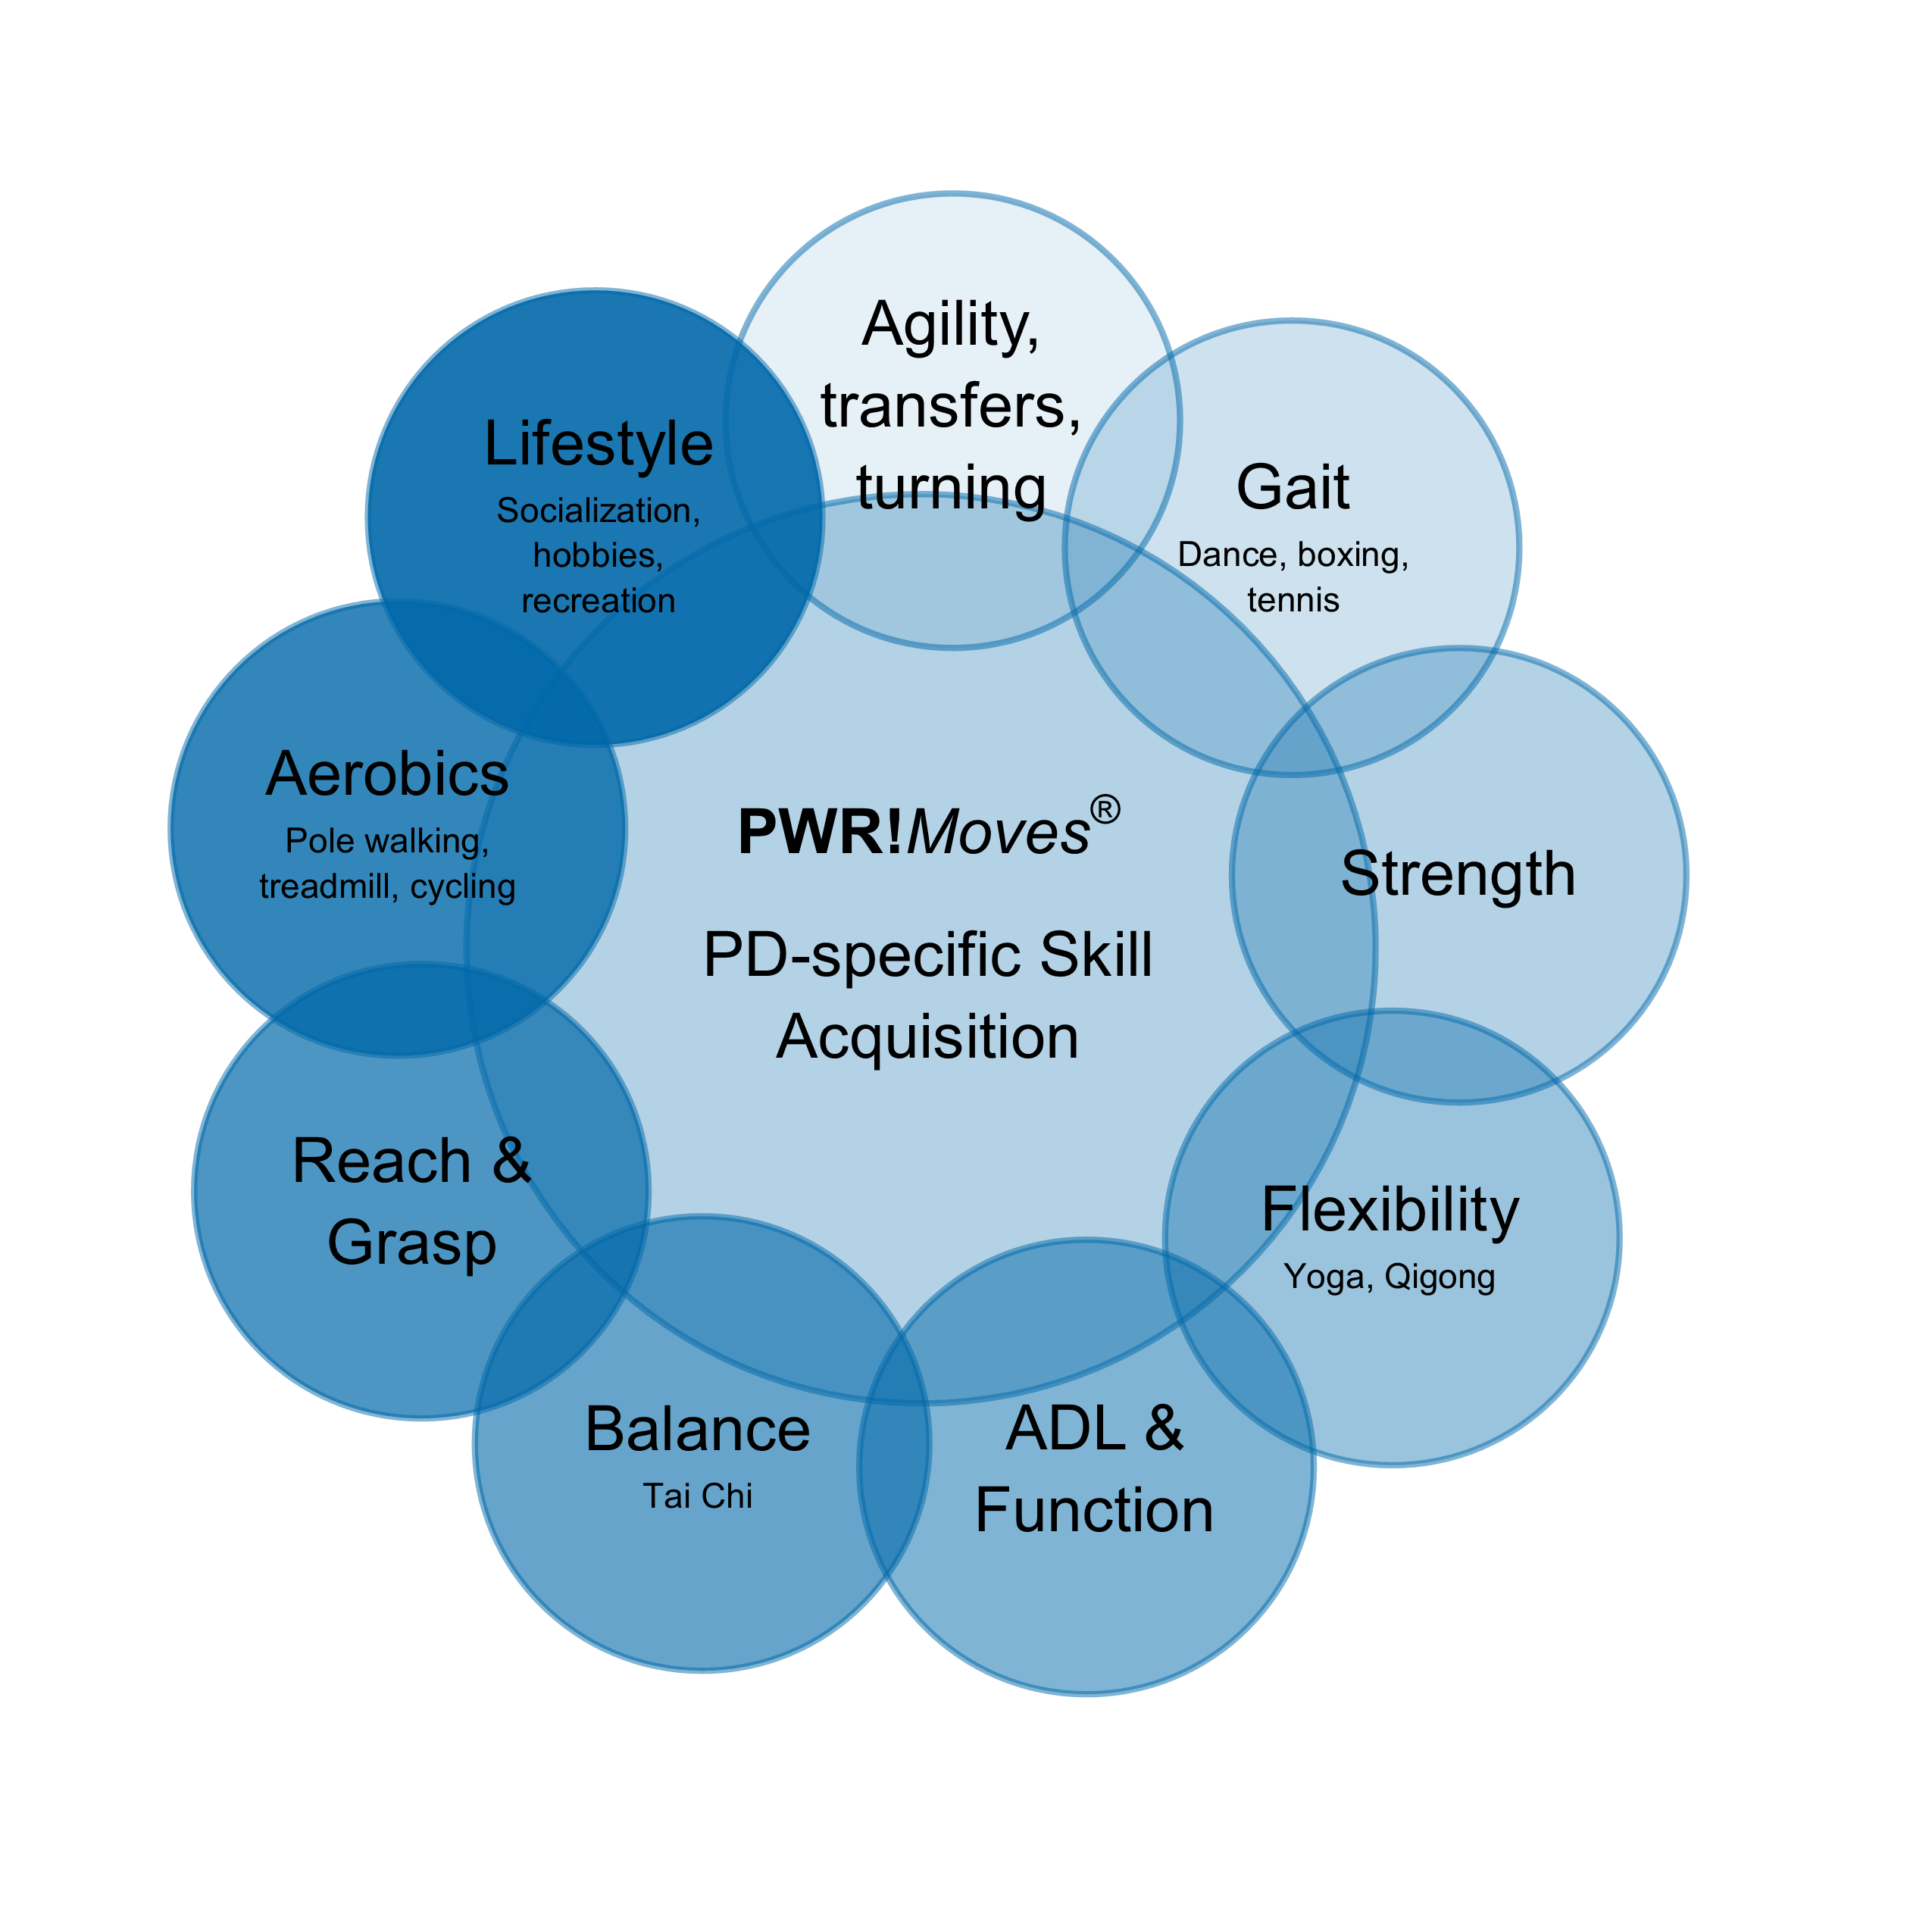 Additional Materials - PWR!Moves PD-specific Skill Acquisition venn diagram 6.14.19